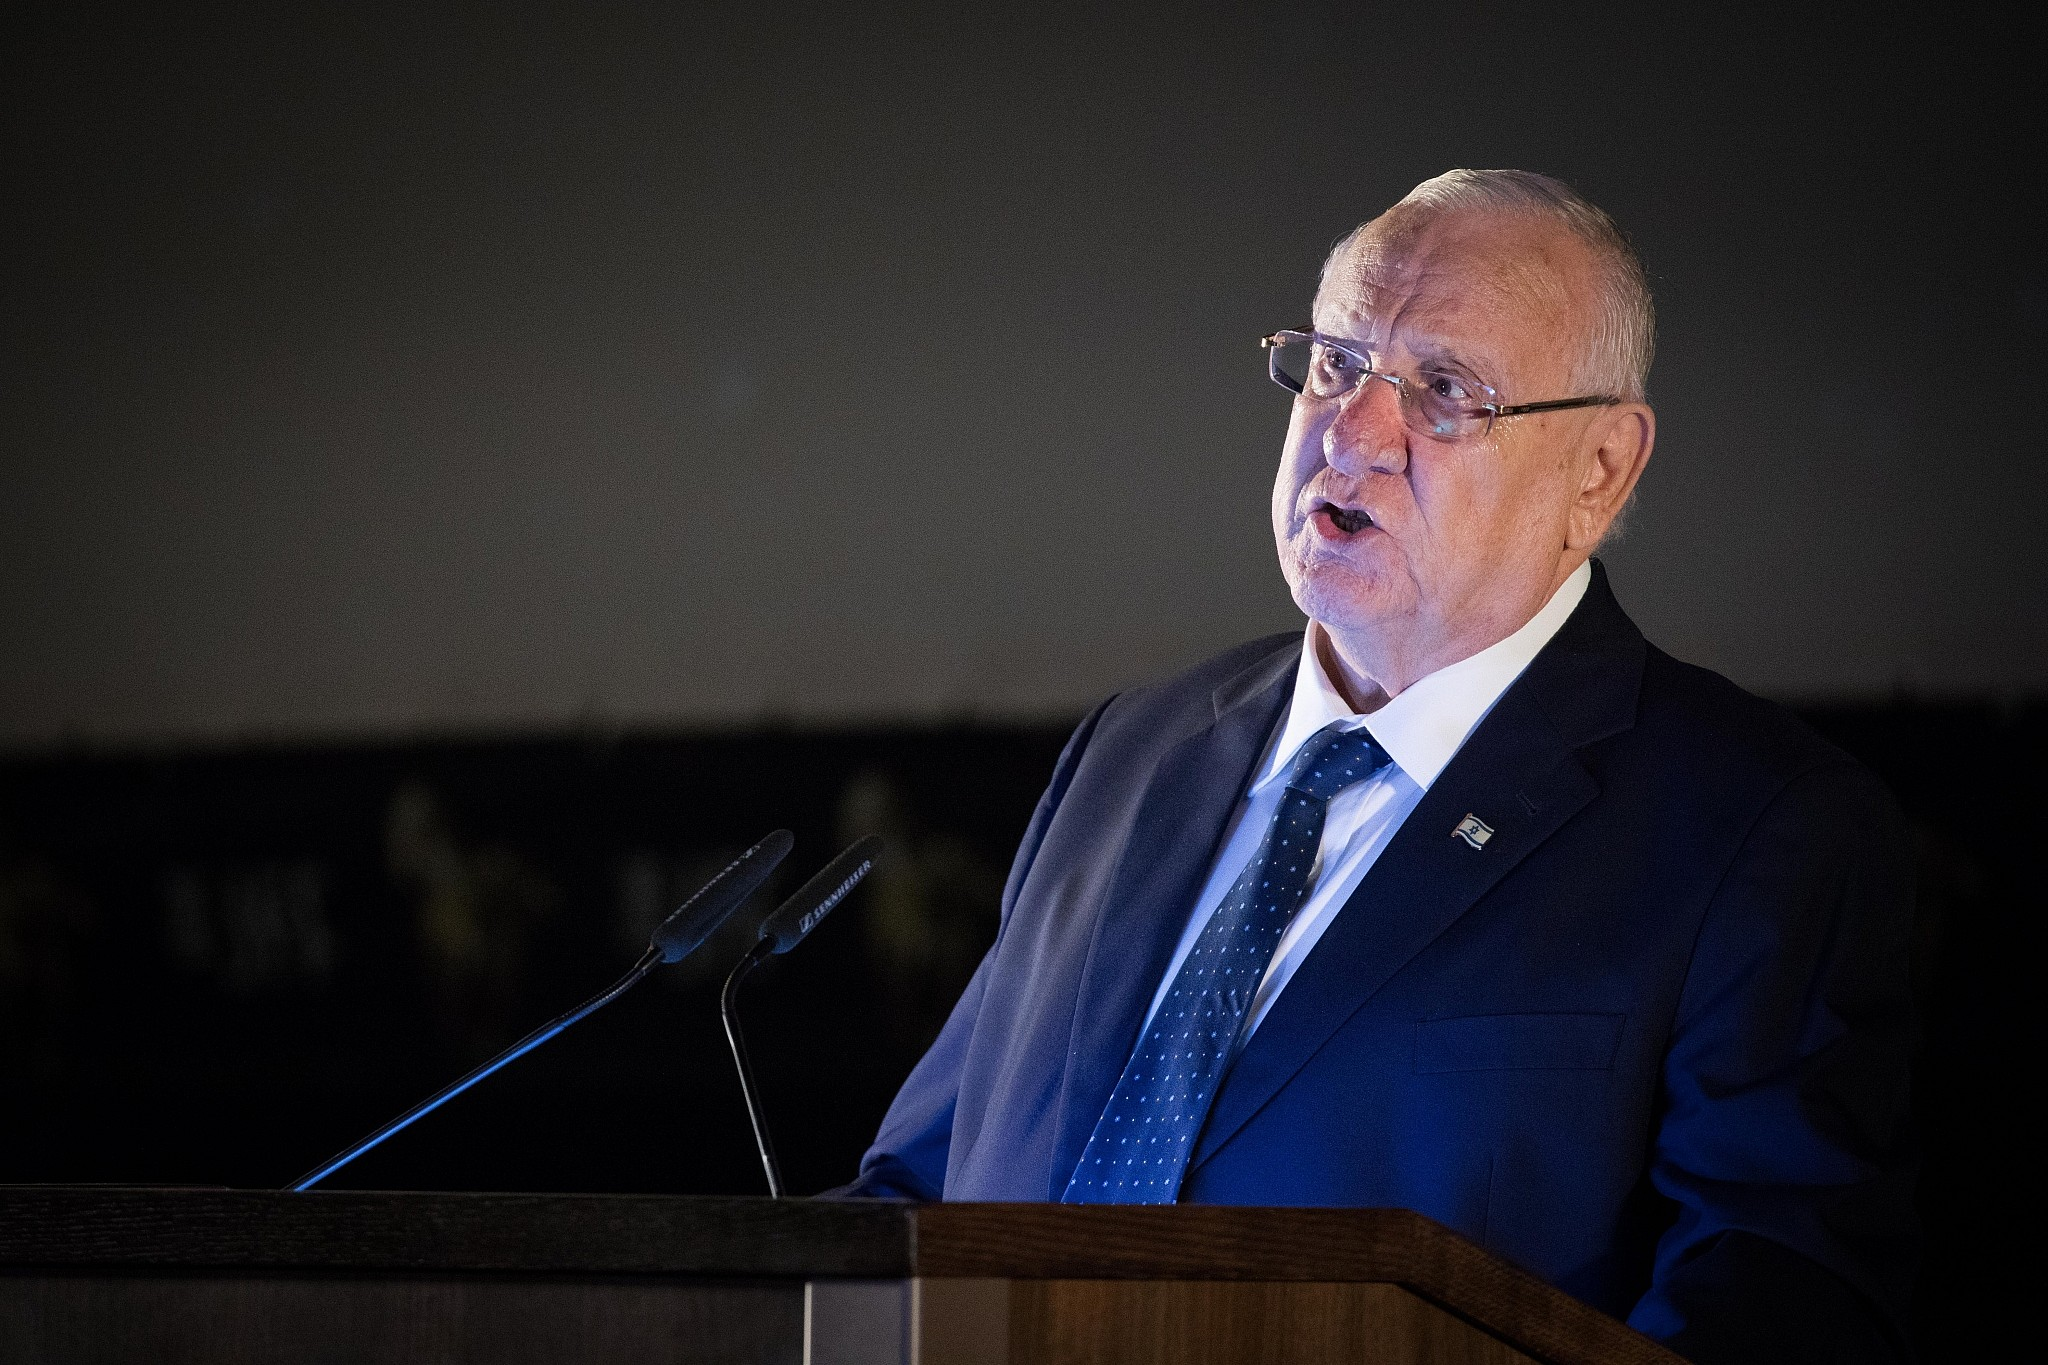 Israeli president Reuven Rivlin speaks at the opening night of the Jerusalem Film Festival in Jerusalem